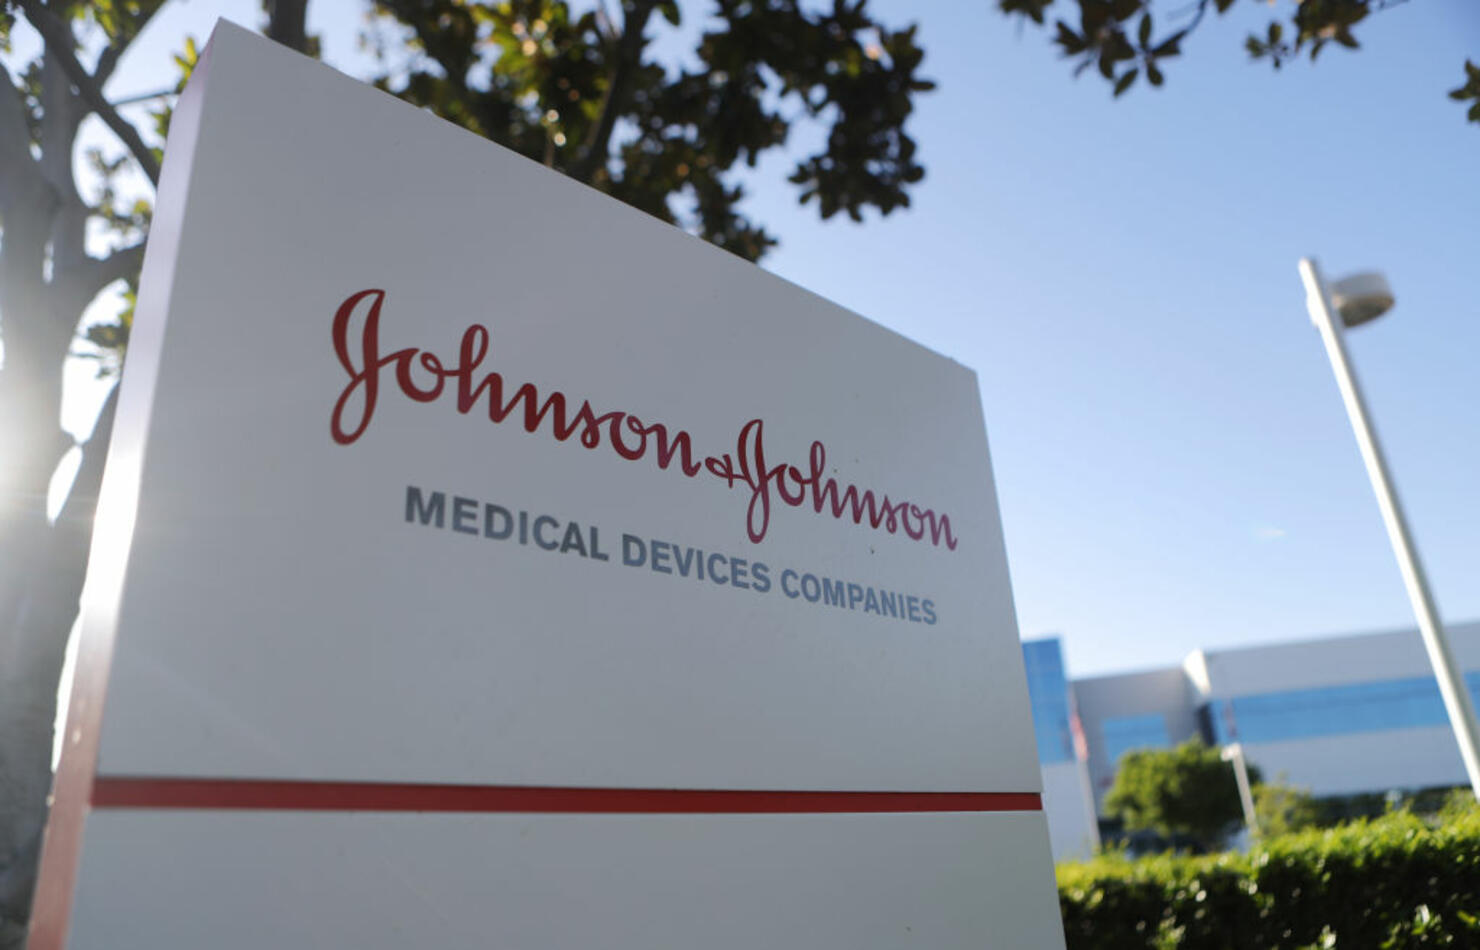 Johnson And Johnson Ordered To Pay 572 Million For Role In Oklahoma Opioid Crisis